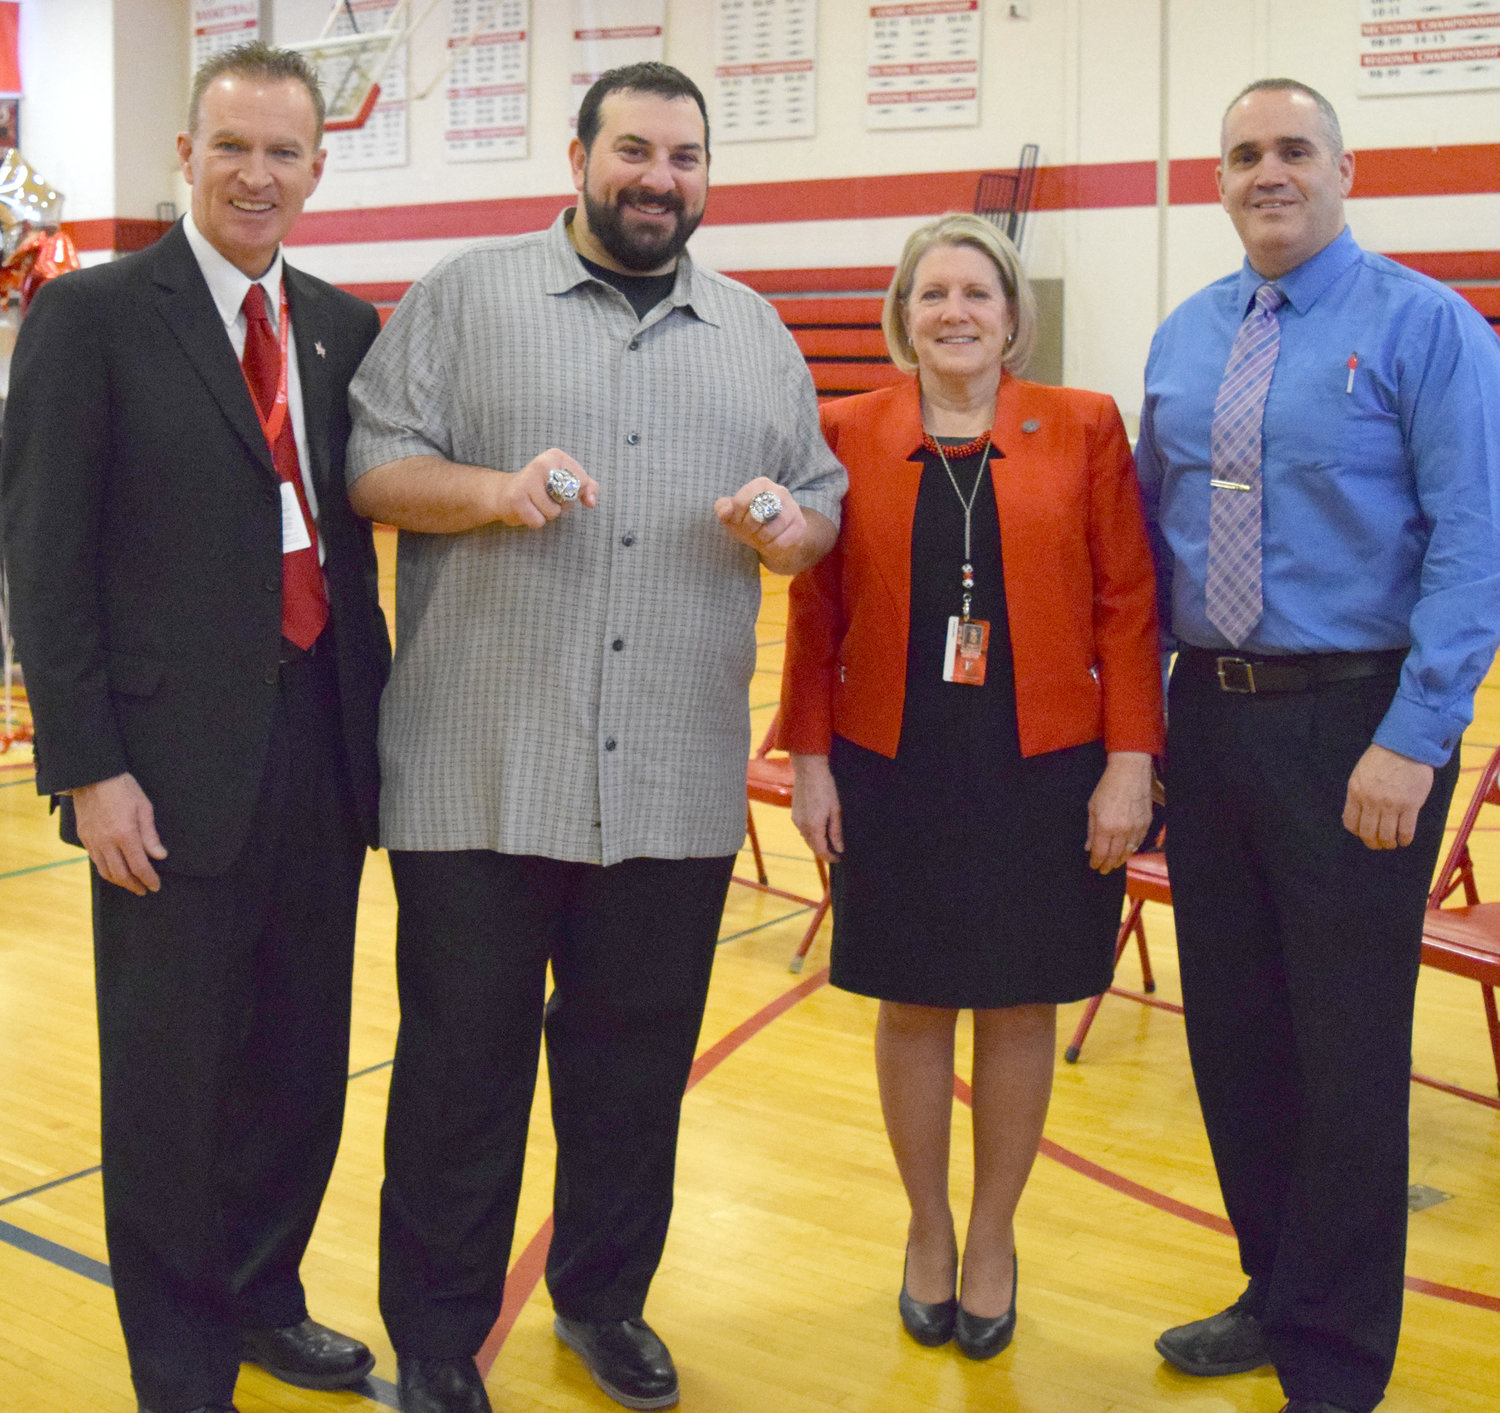 VVS CELEBRITY ALUMNUS VISIT — Matt Patricia, who won two Super Bowls as defensive coordinator of the New England Patriots and now is head coach of the Detroit Lions, shows off his rings during a visit Friday to his alma mater, Vernon-Verona-Sherrill High School. From left: Andy Brown, VVS school district assistant superintendent of curriculum, instruction and assessment; Patricia; VVS Superintendent Martha Group; Mark Wixson, VVS Assistant superintendent for finance and operations.